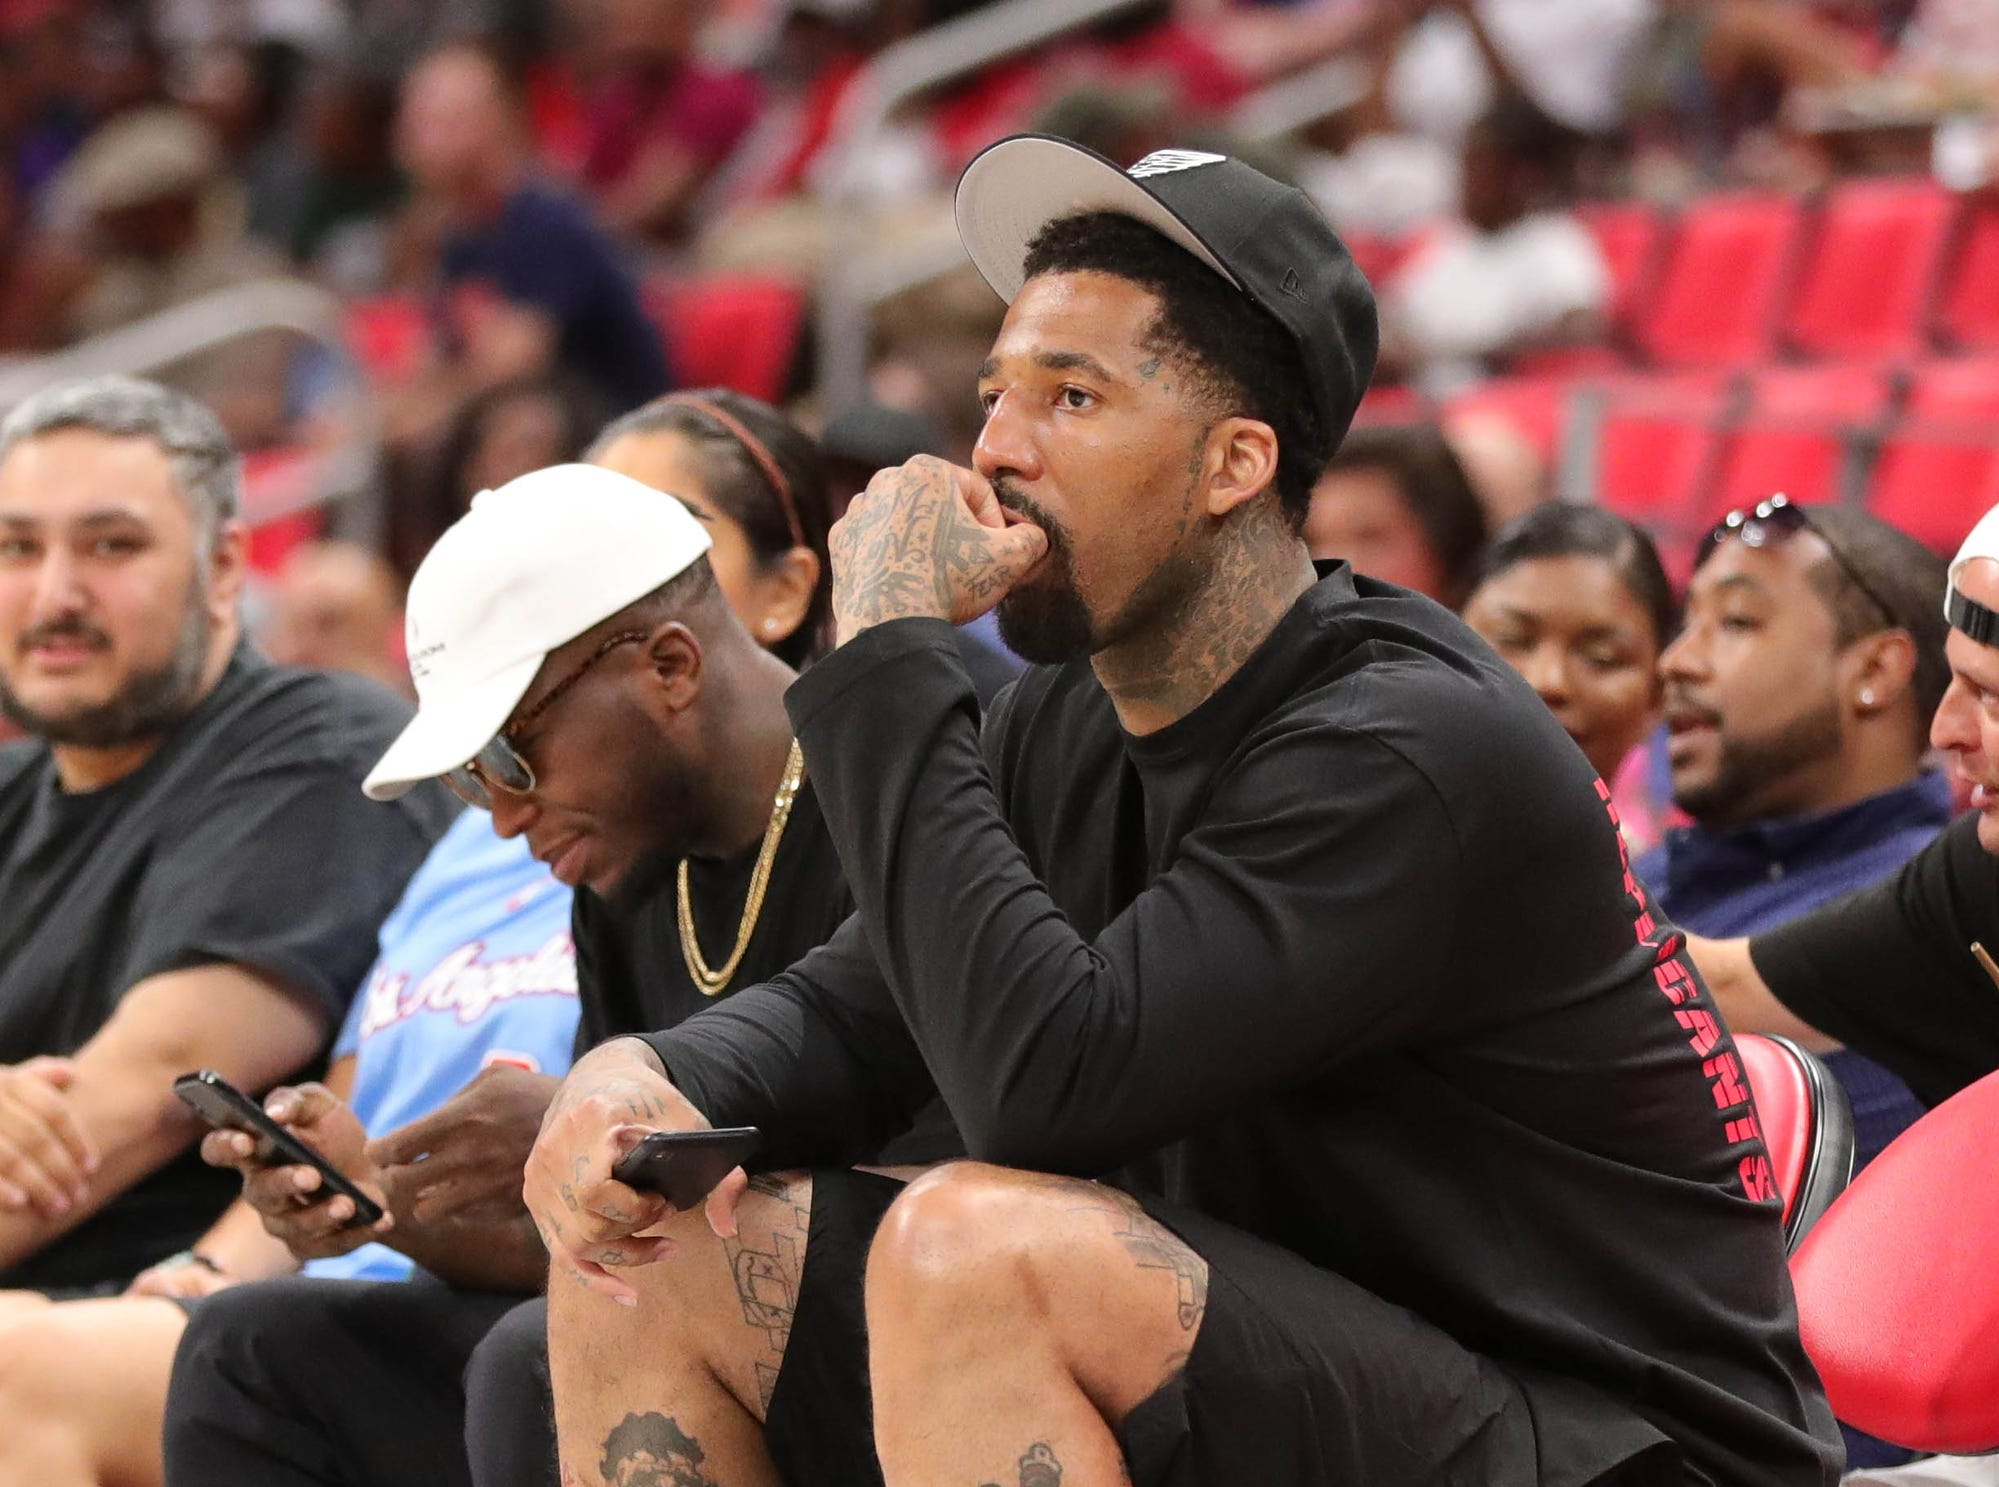 Wilson Chandler watches Trilogy play against Killer 3s during BIG3 action on Friday, July 13, 2018 at Little Caesars Arena in Detroit.